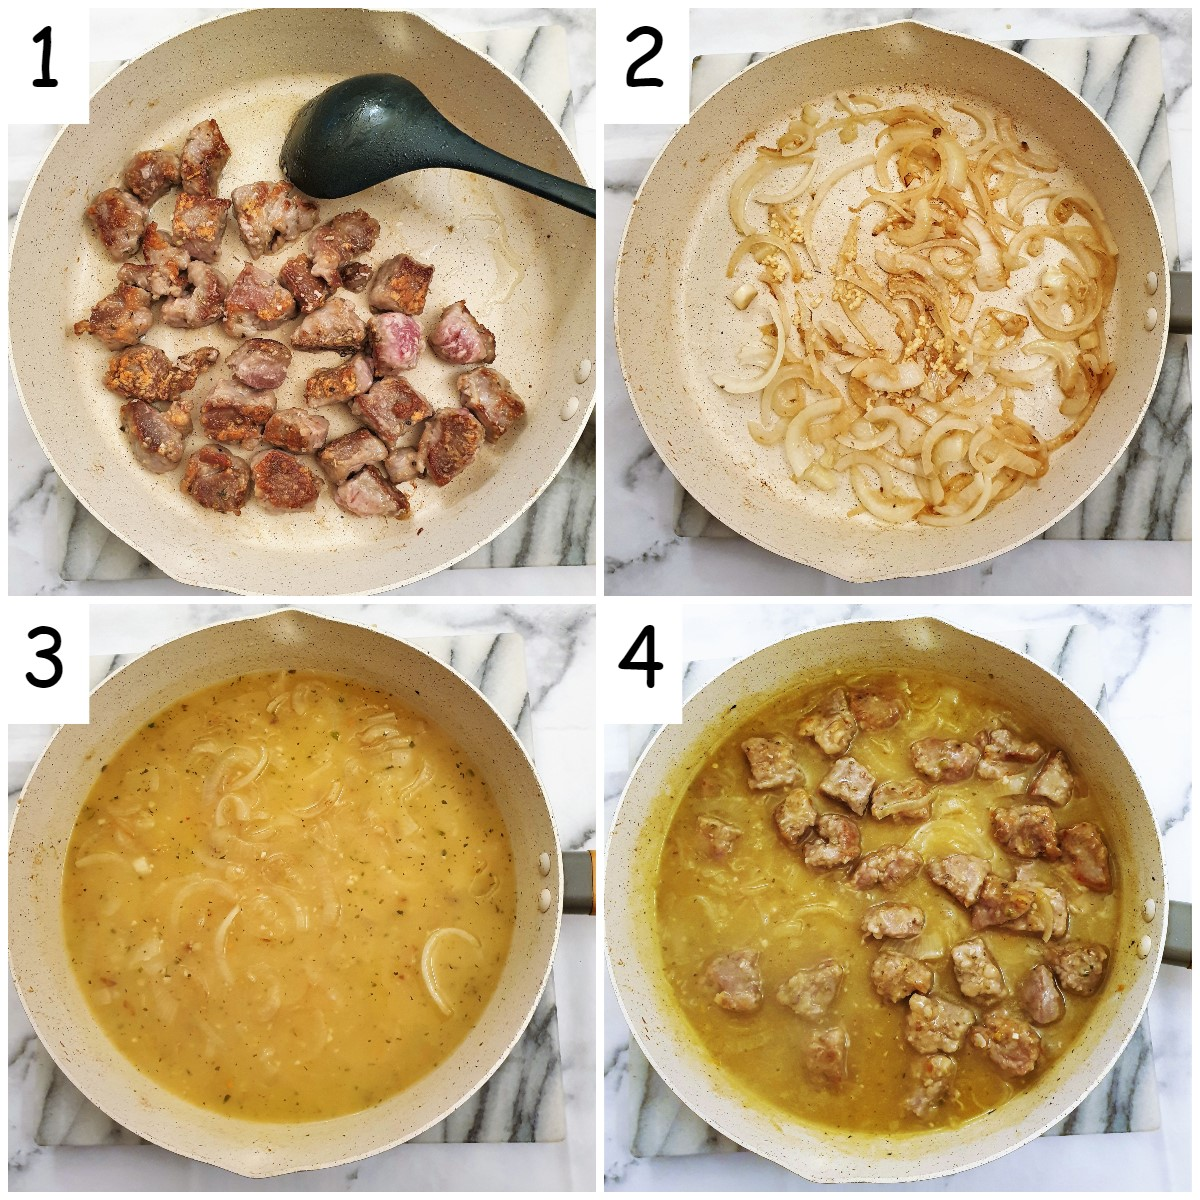 Steps for making pan-fried pork with pears and caramelized onions.